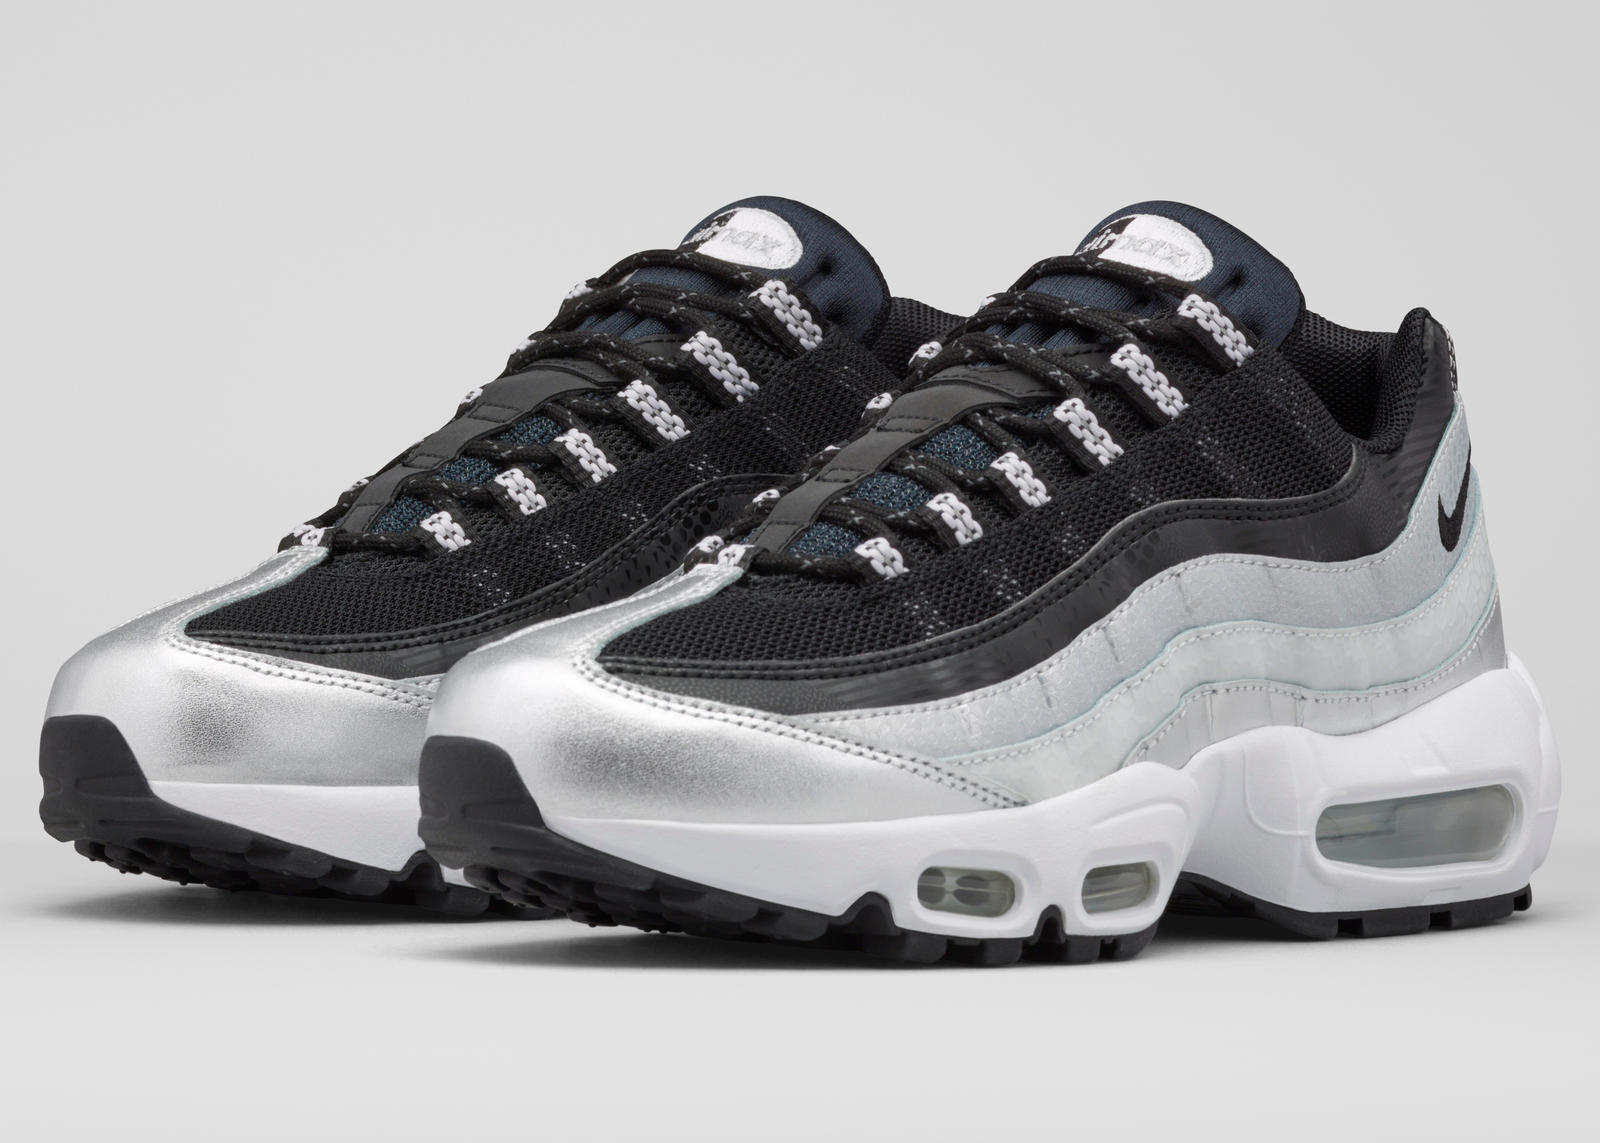 Cheap Nike air griffey max 360 diamond Fitpacking